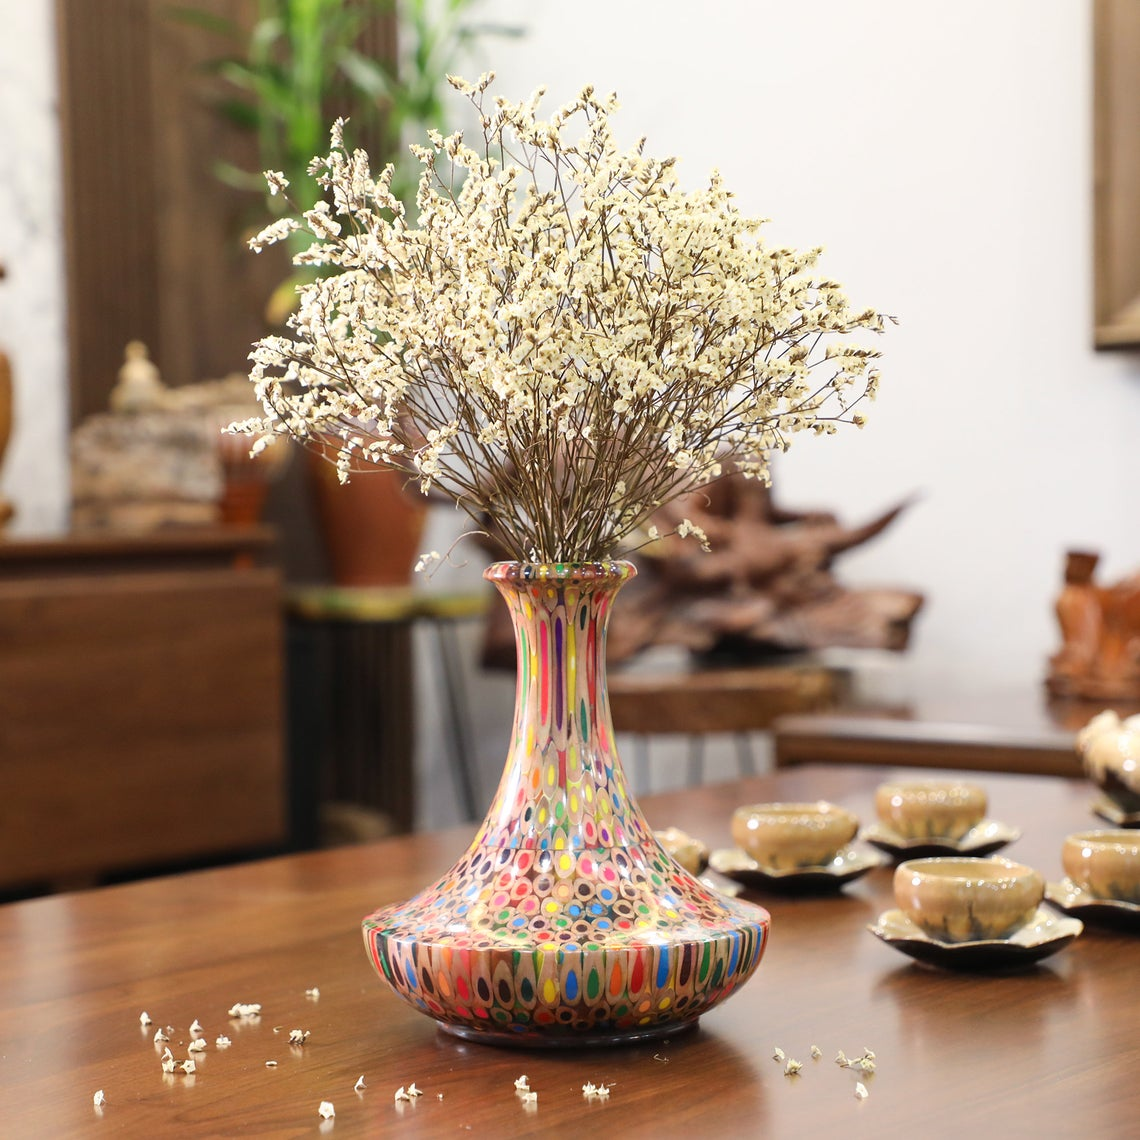 Decorative Colored-pencil High Tower Vase I